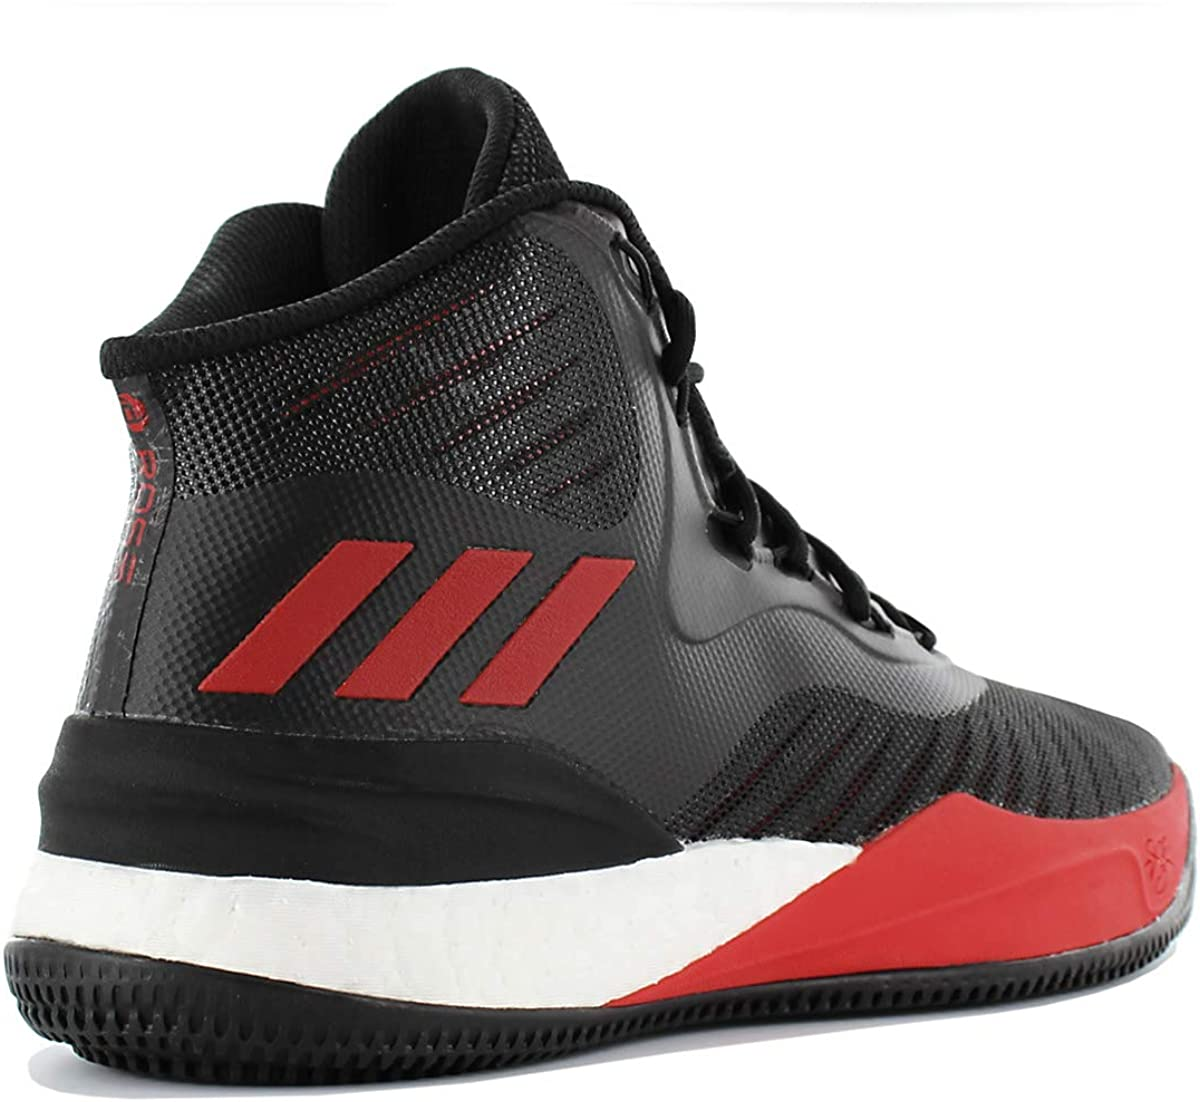 adidas D Rose 8, Chaussures de Fitness Homme Multicolore Negbas Escarl Ftwbla